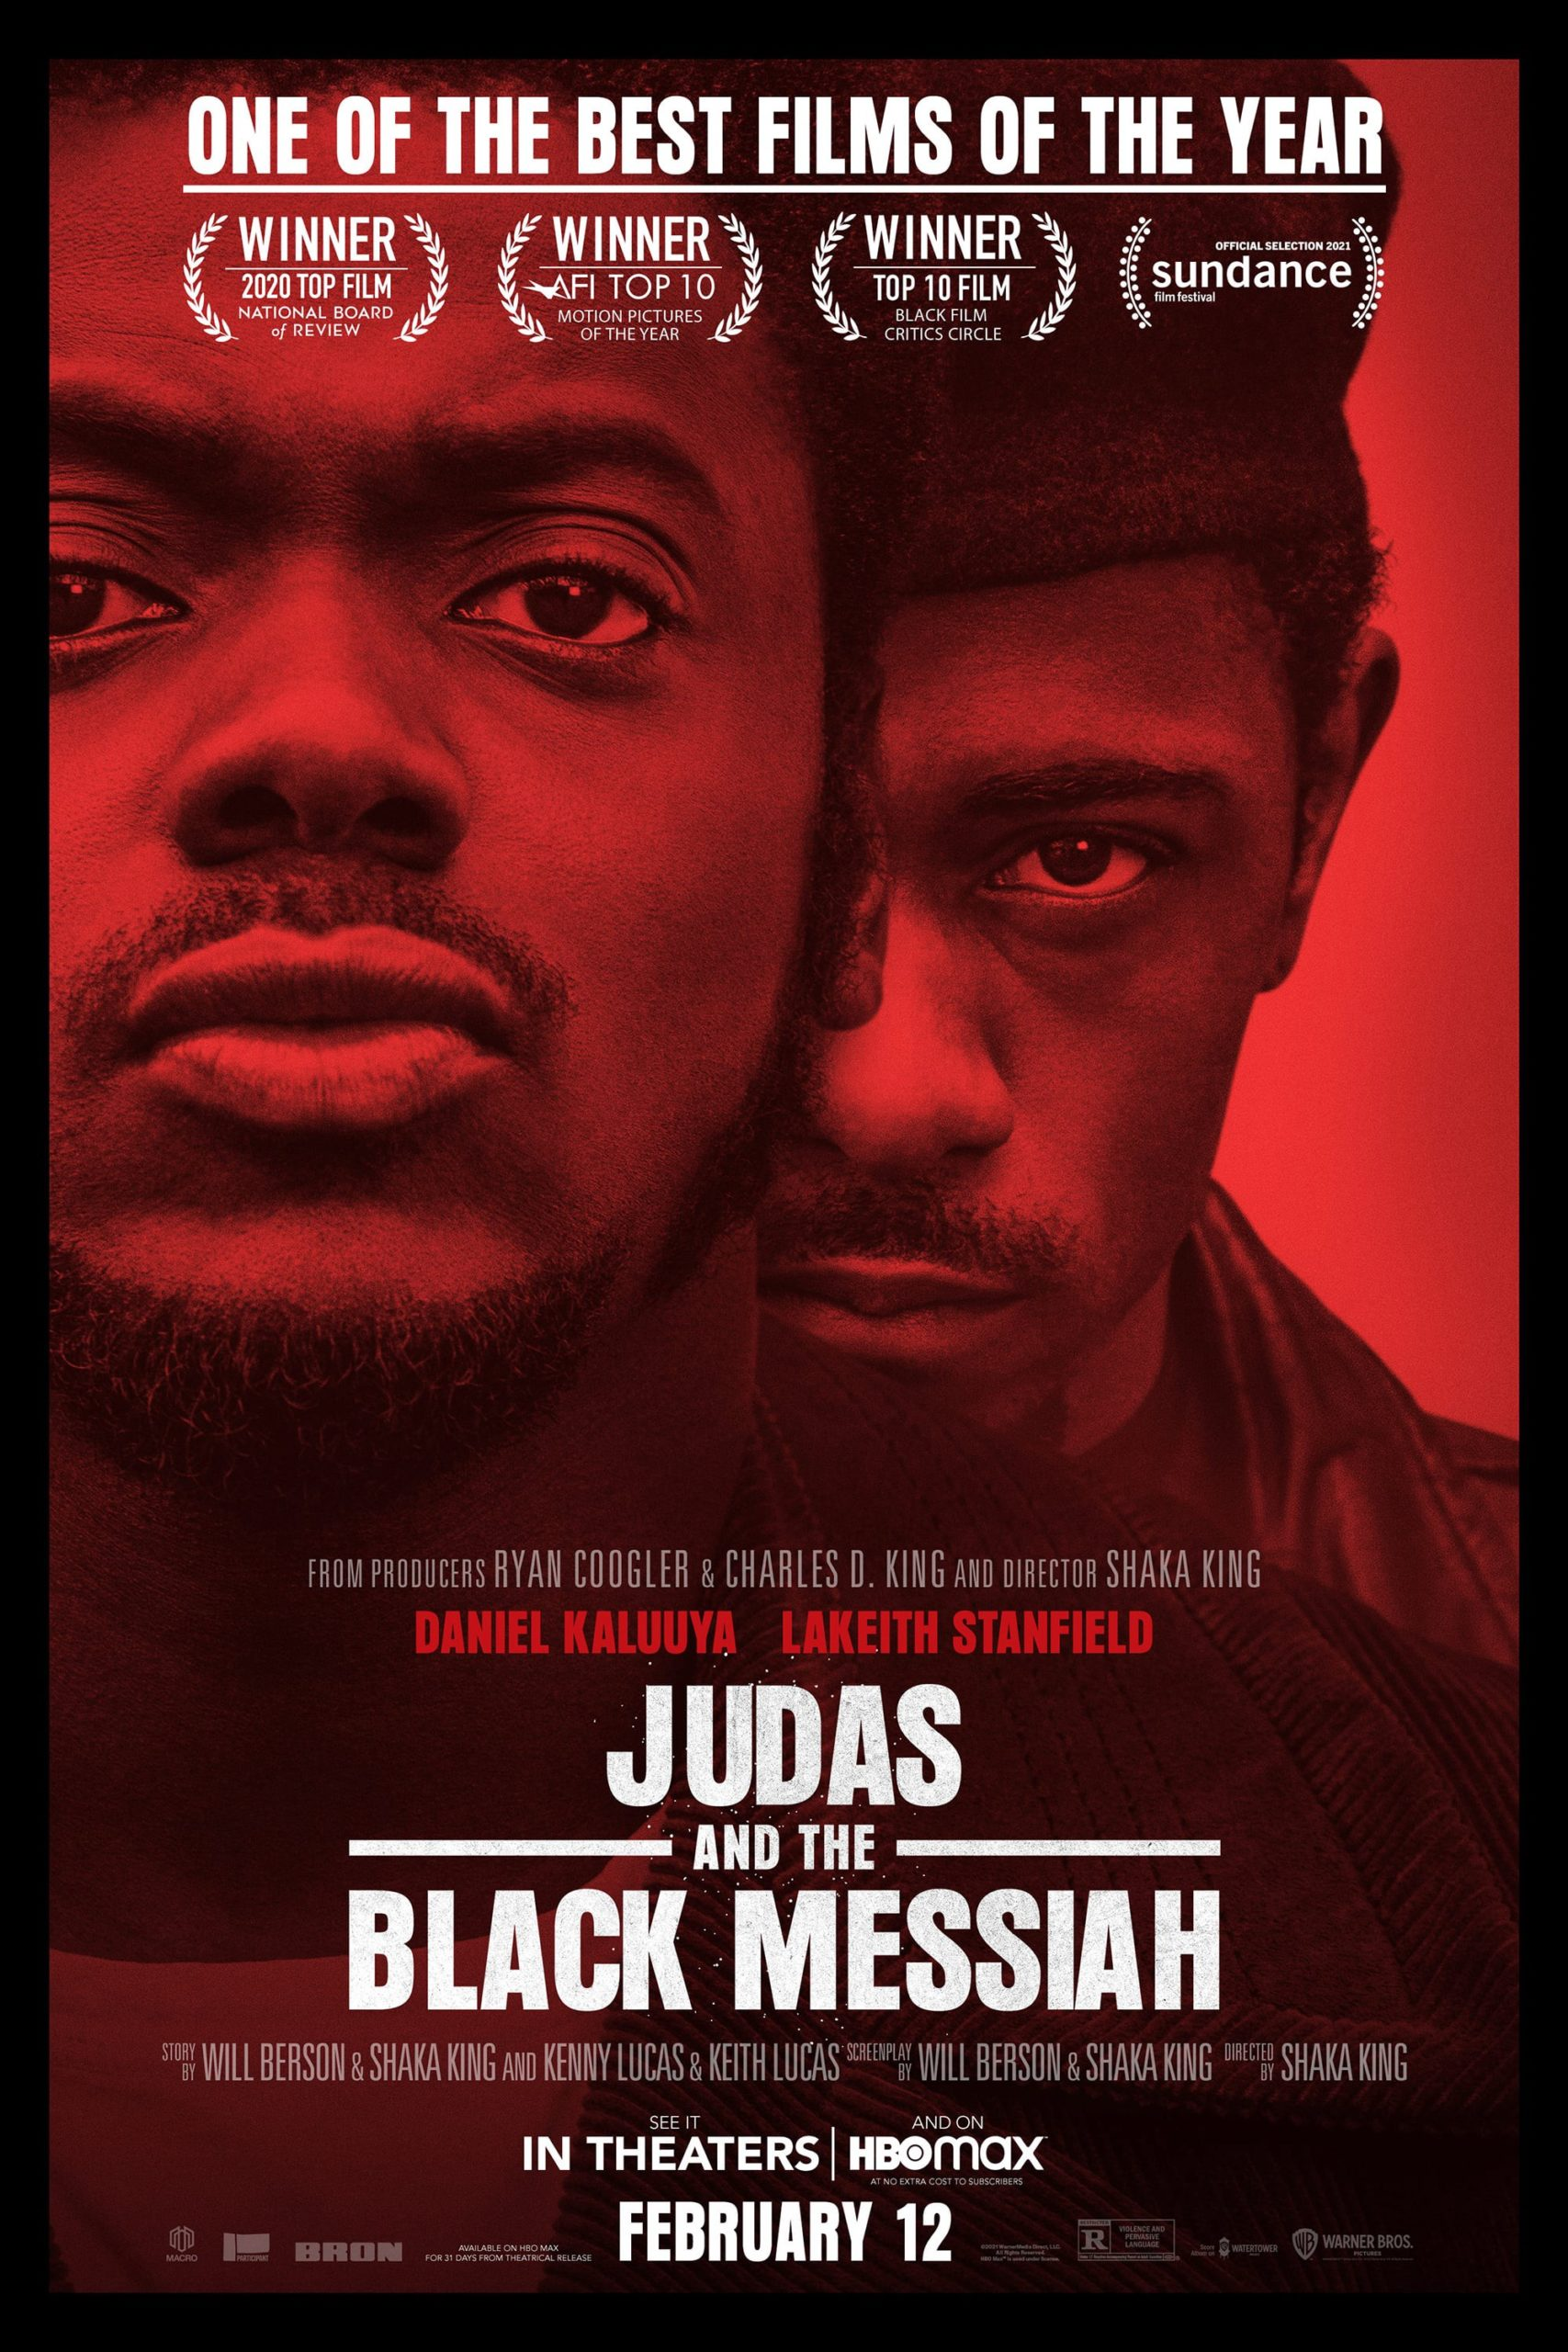 Judas and the Black Messiah 2021: Where to Watch Online for Free!